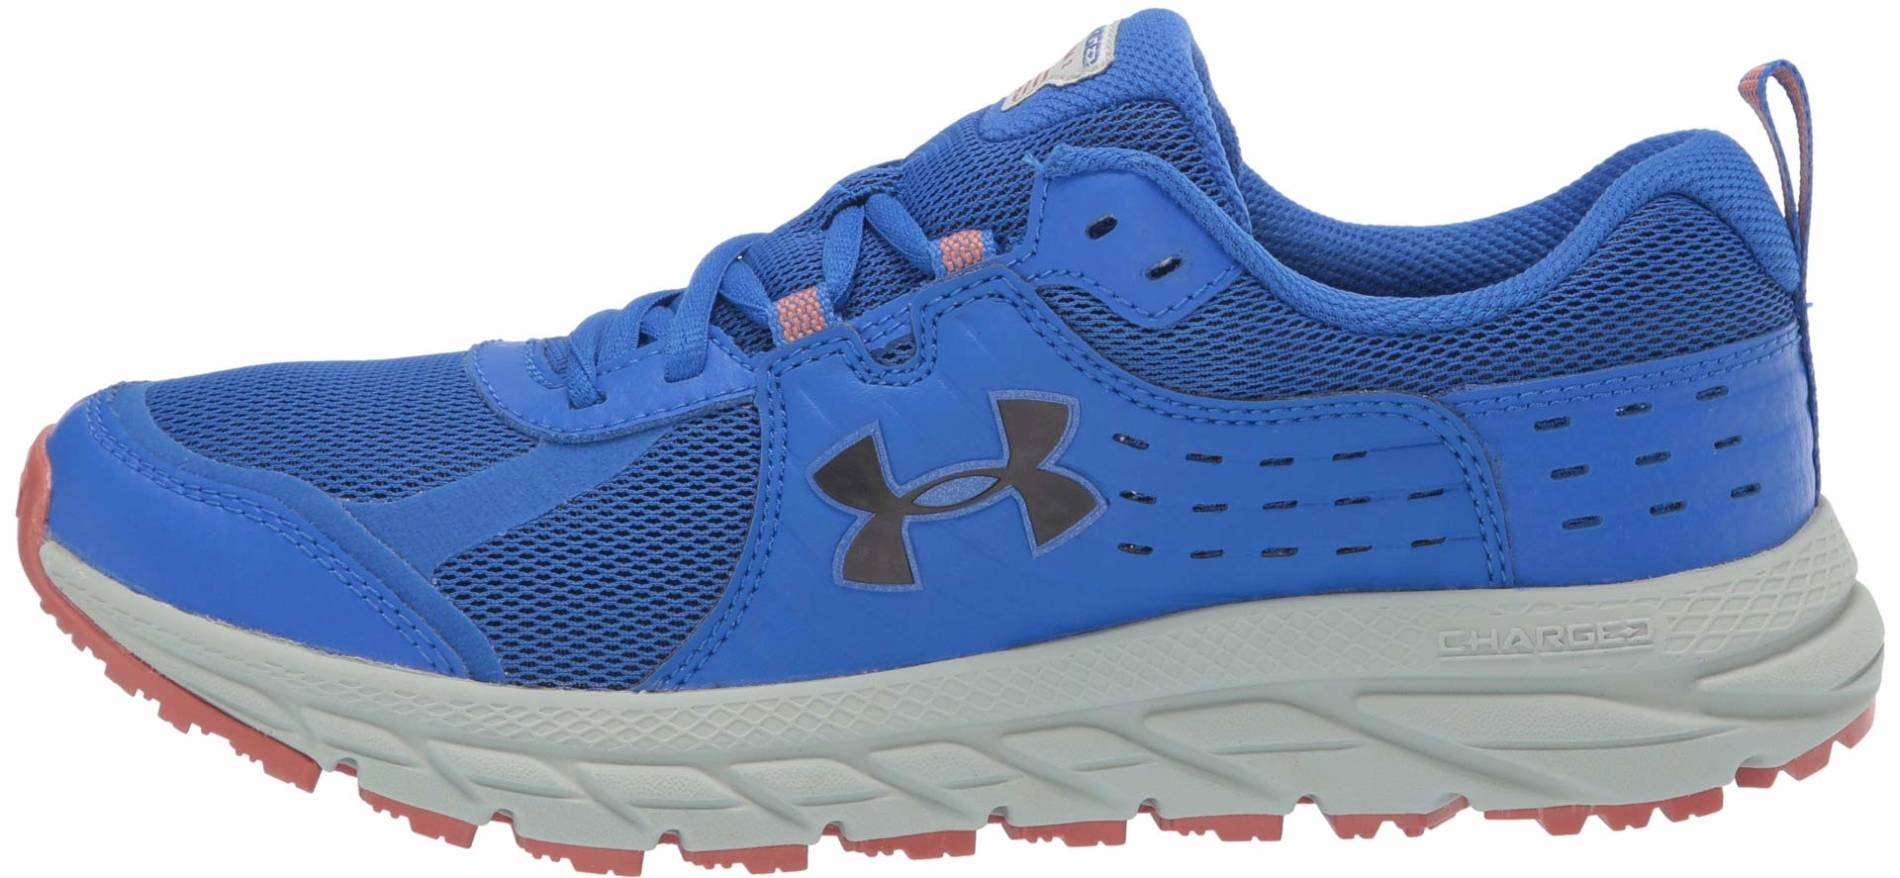 Review of Under Armour Charged Toccoa 2